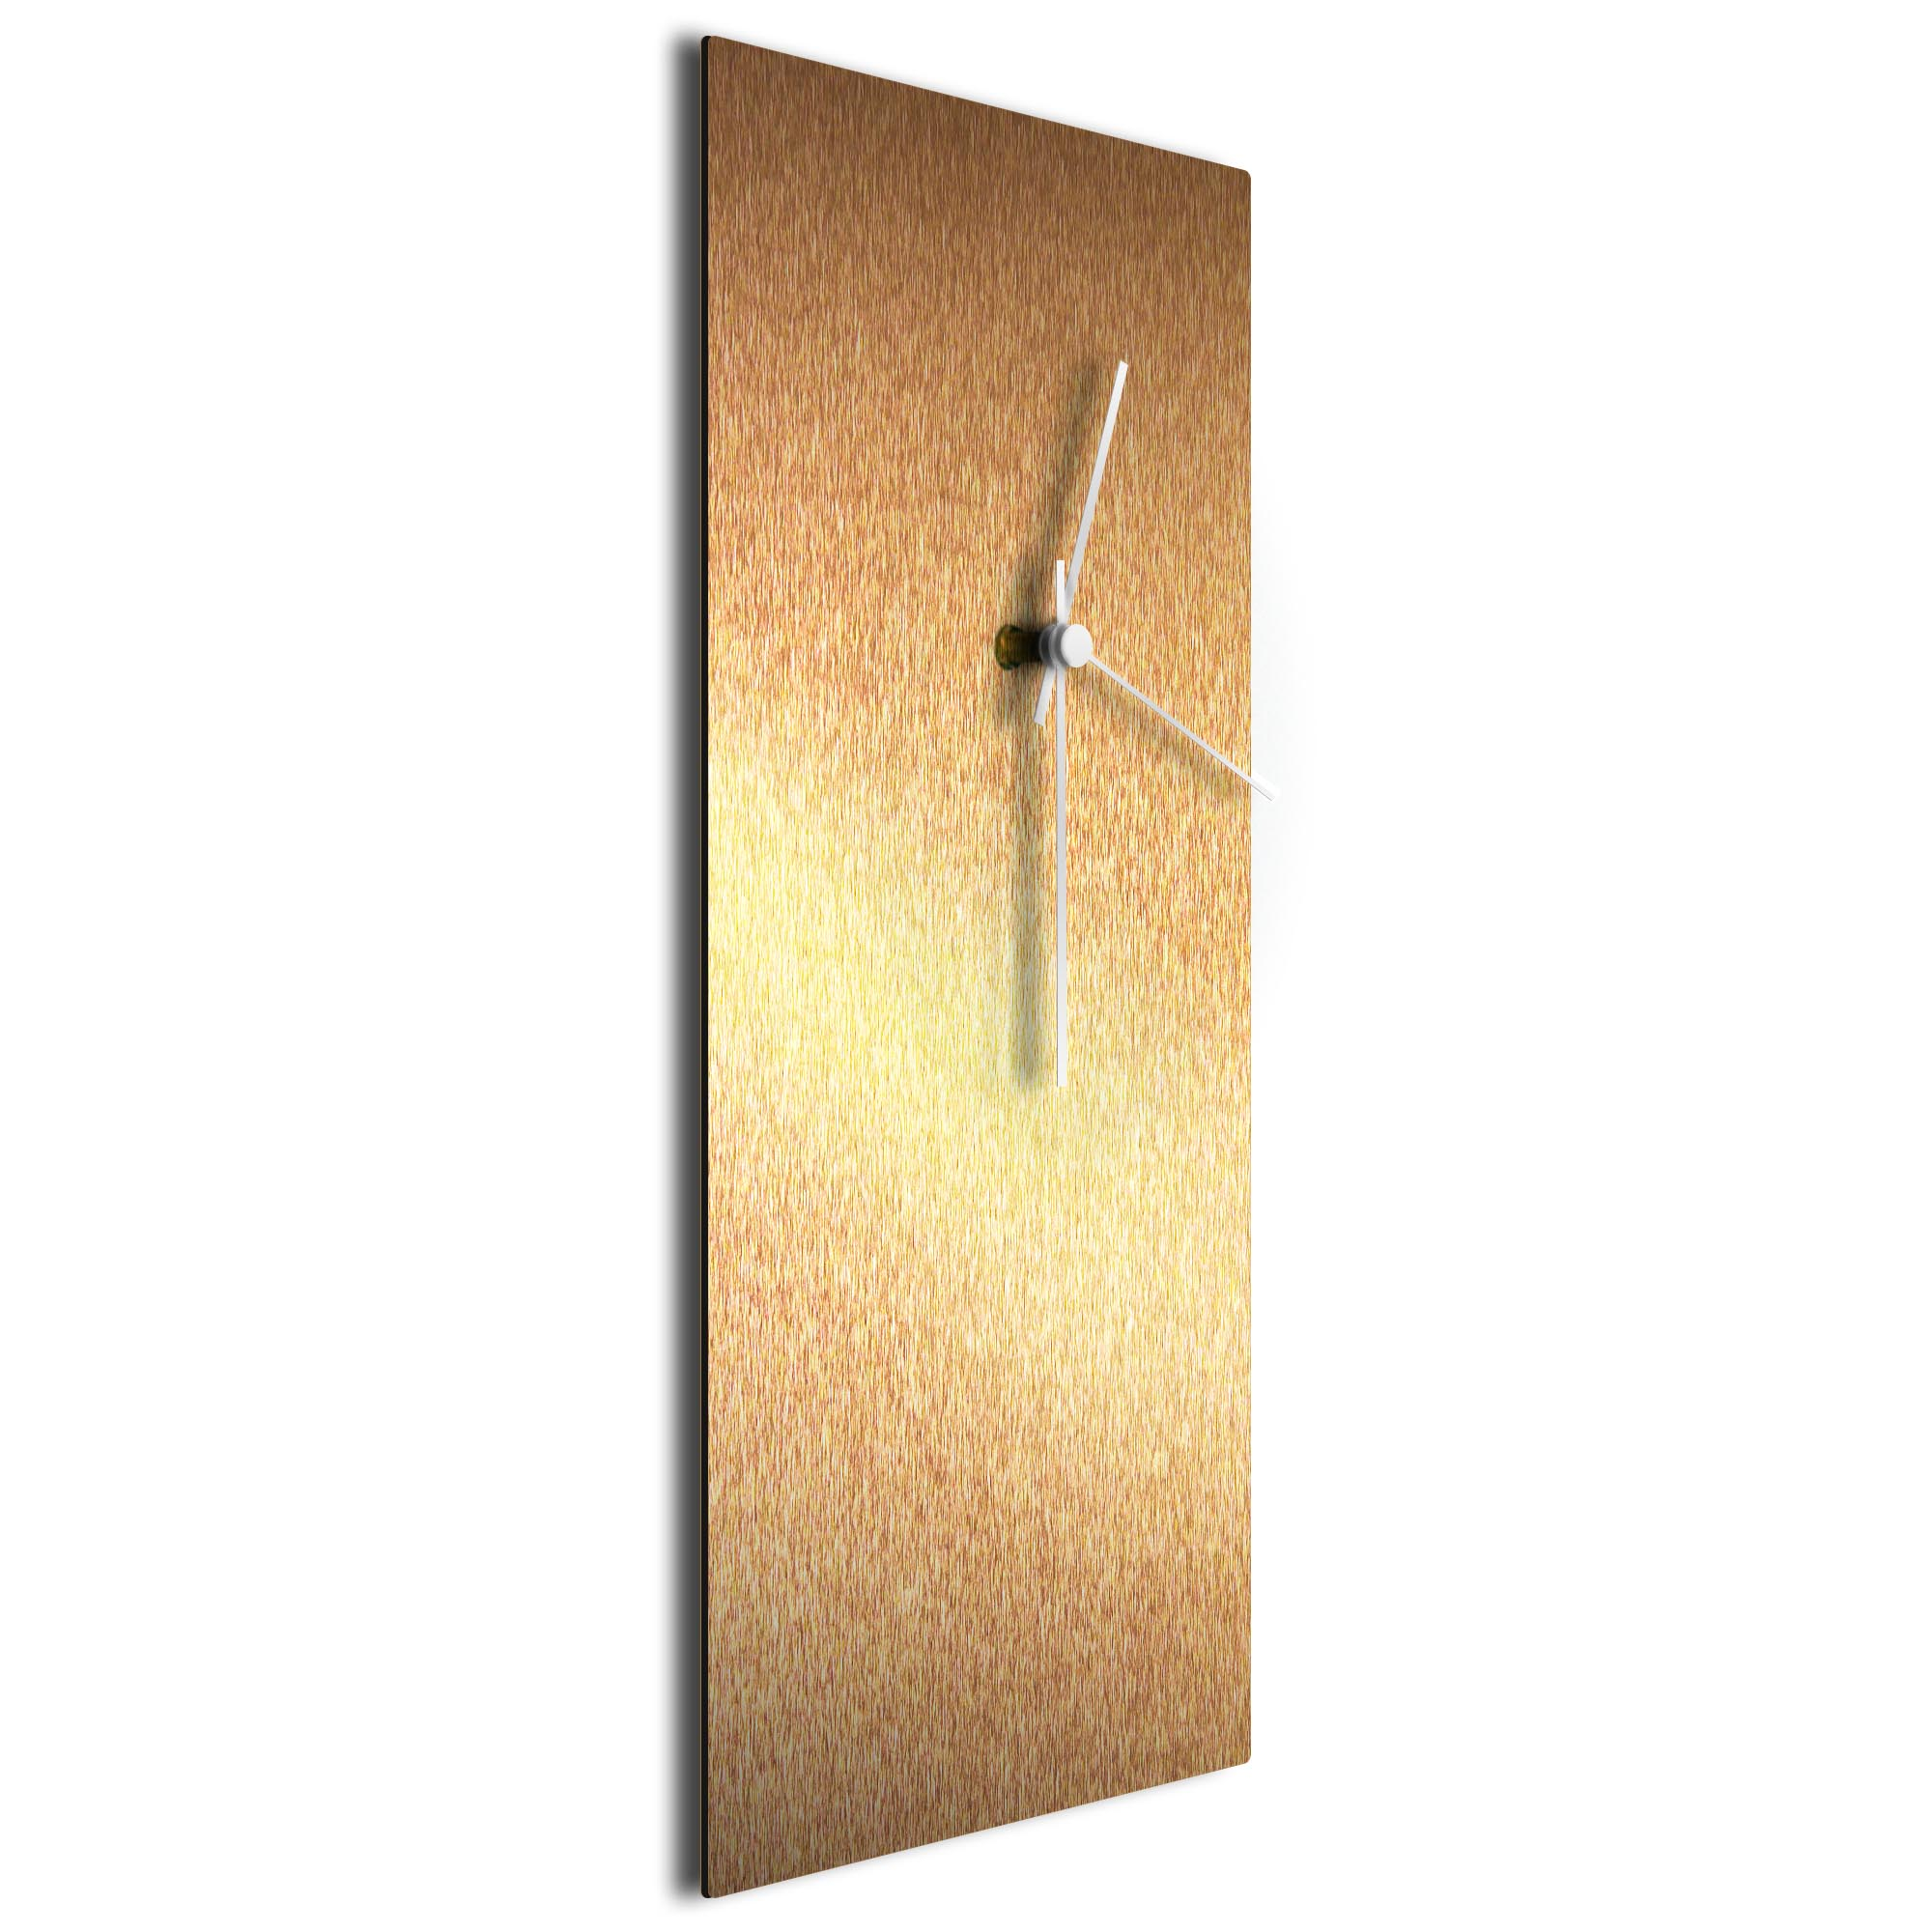 Bronzesmith Clock Large White - Image 2